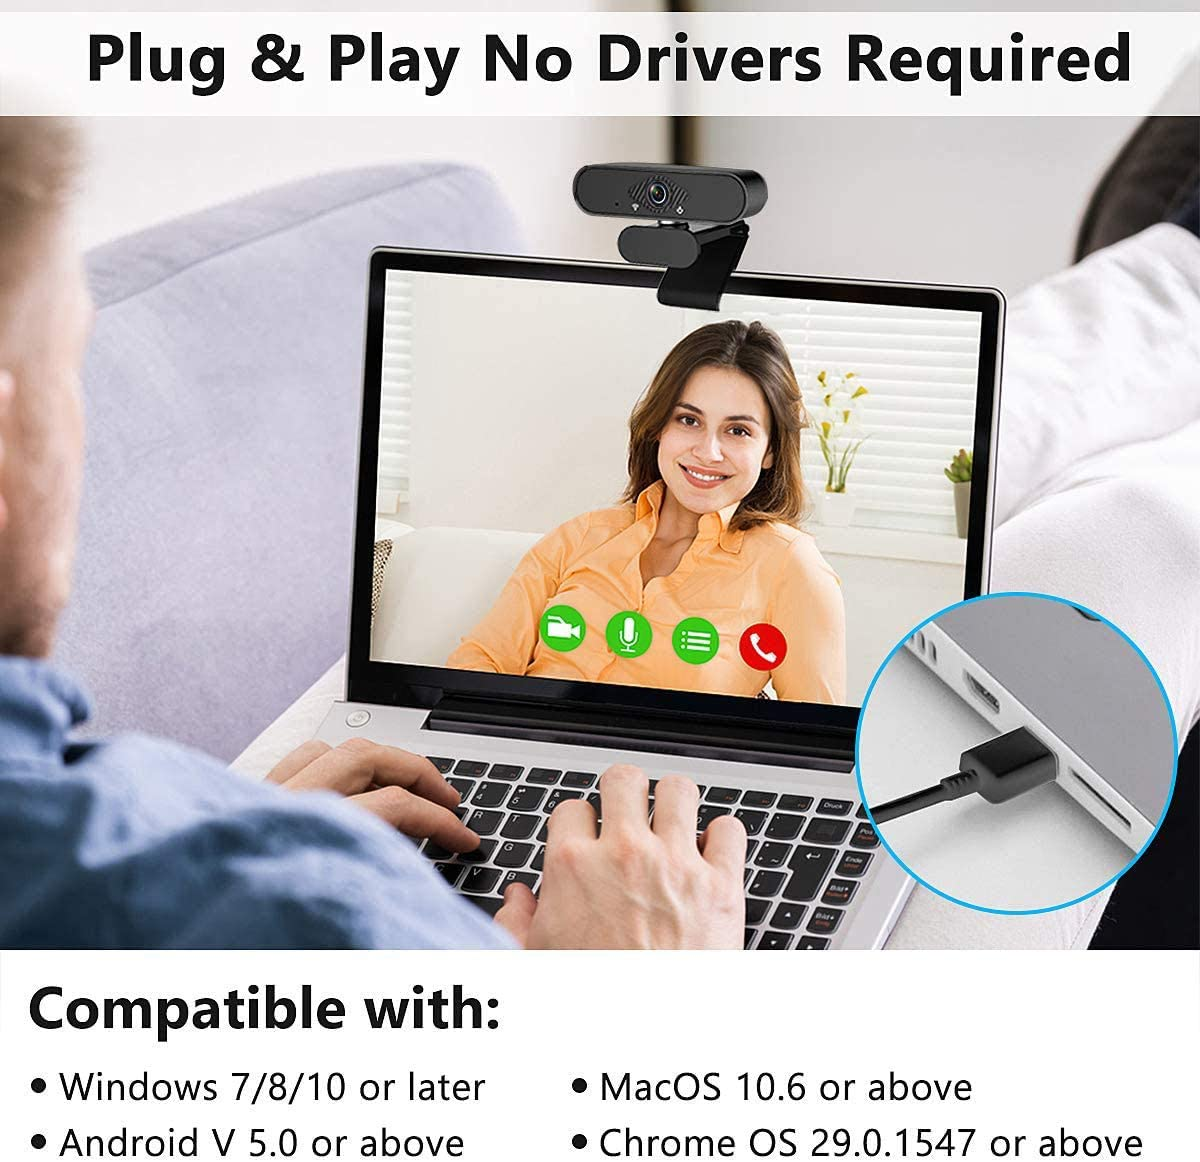 HD PC Webcam Laptop Plug and Play USB Webcam Streaming Computer Web Camera with 110-Degree View Angle Desktop Webcam for Video Calling Recording Conferencing 1080P Webcam with Microphone